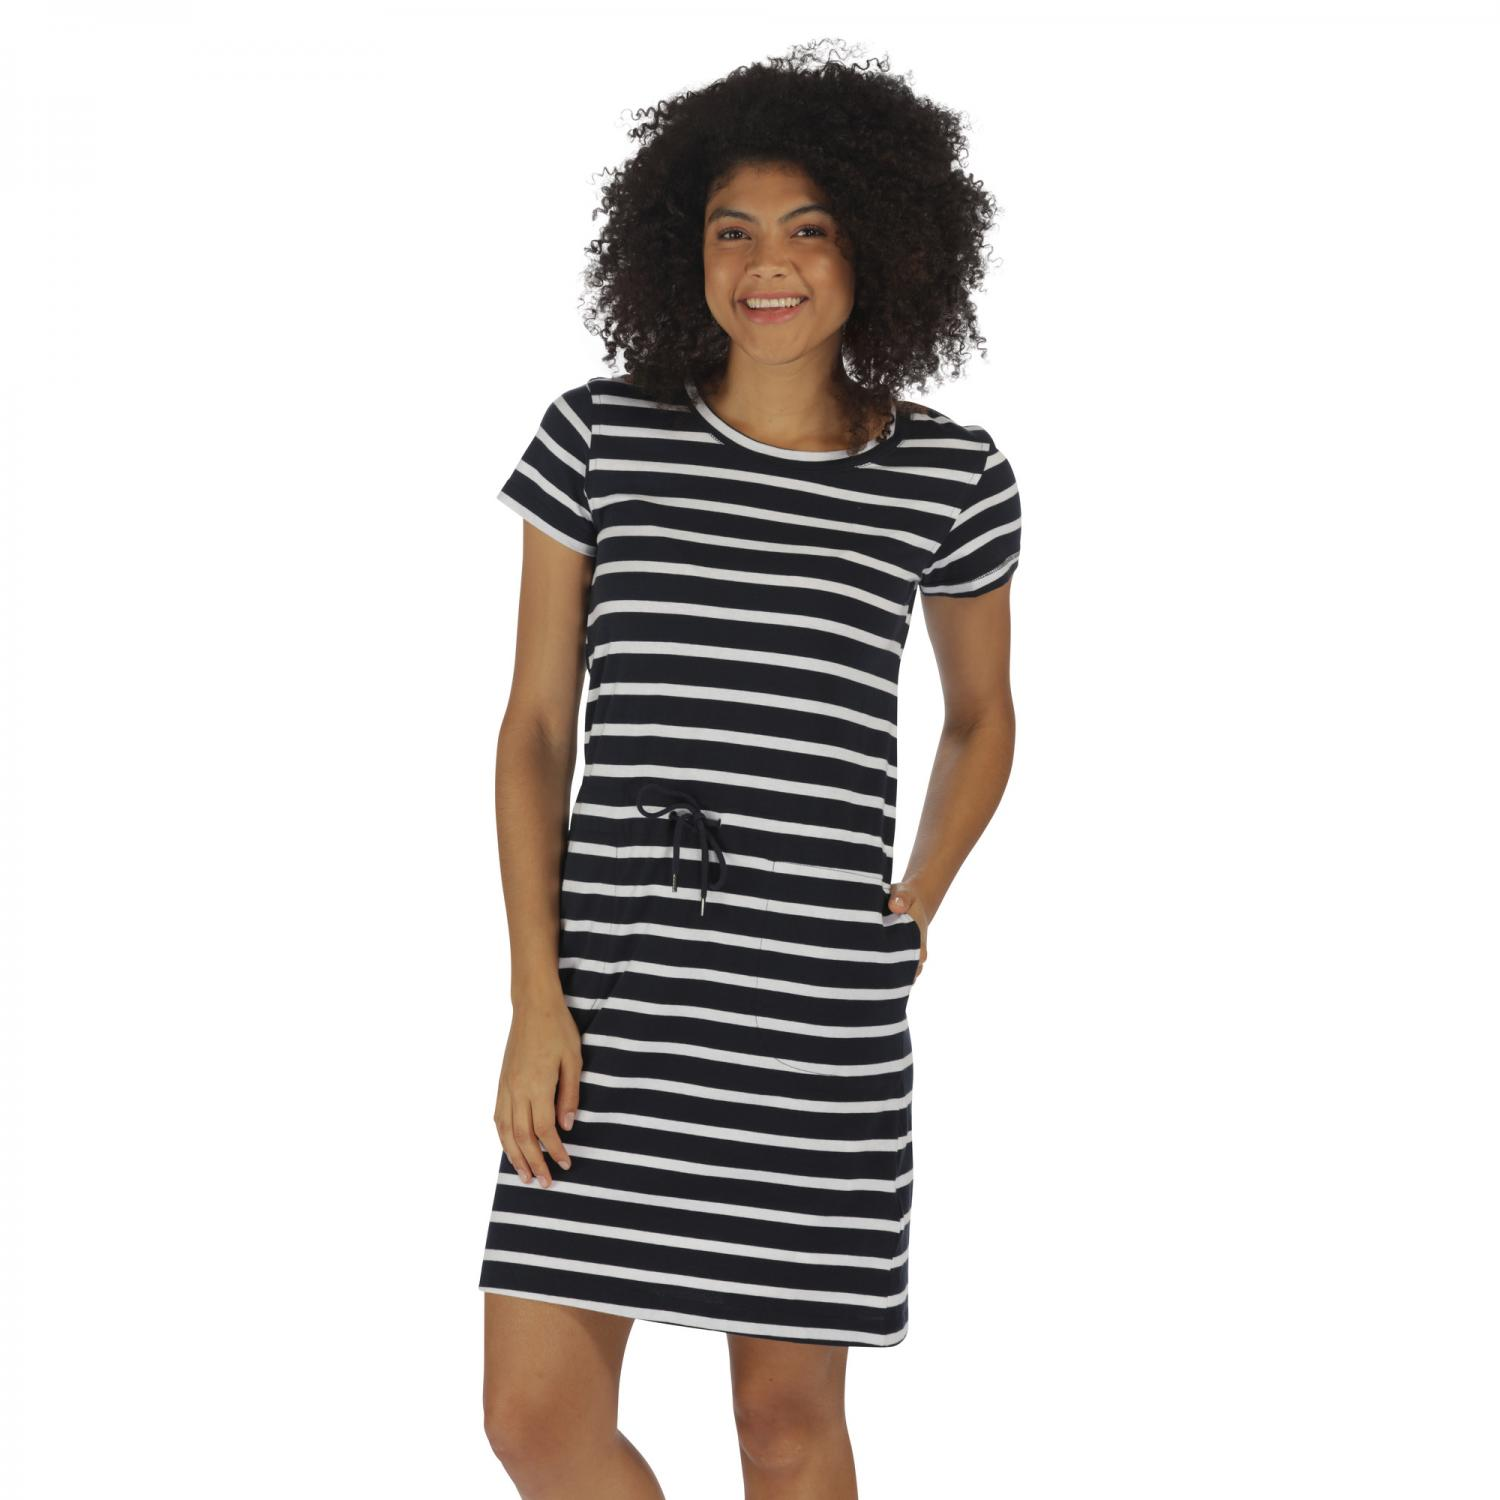 Harissa Dress Navy Stripe